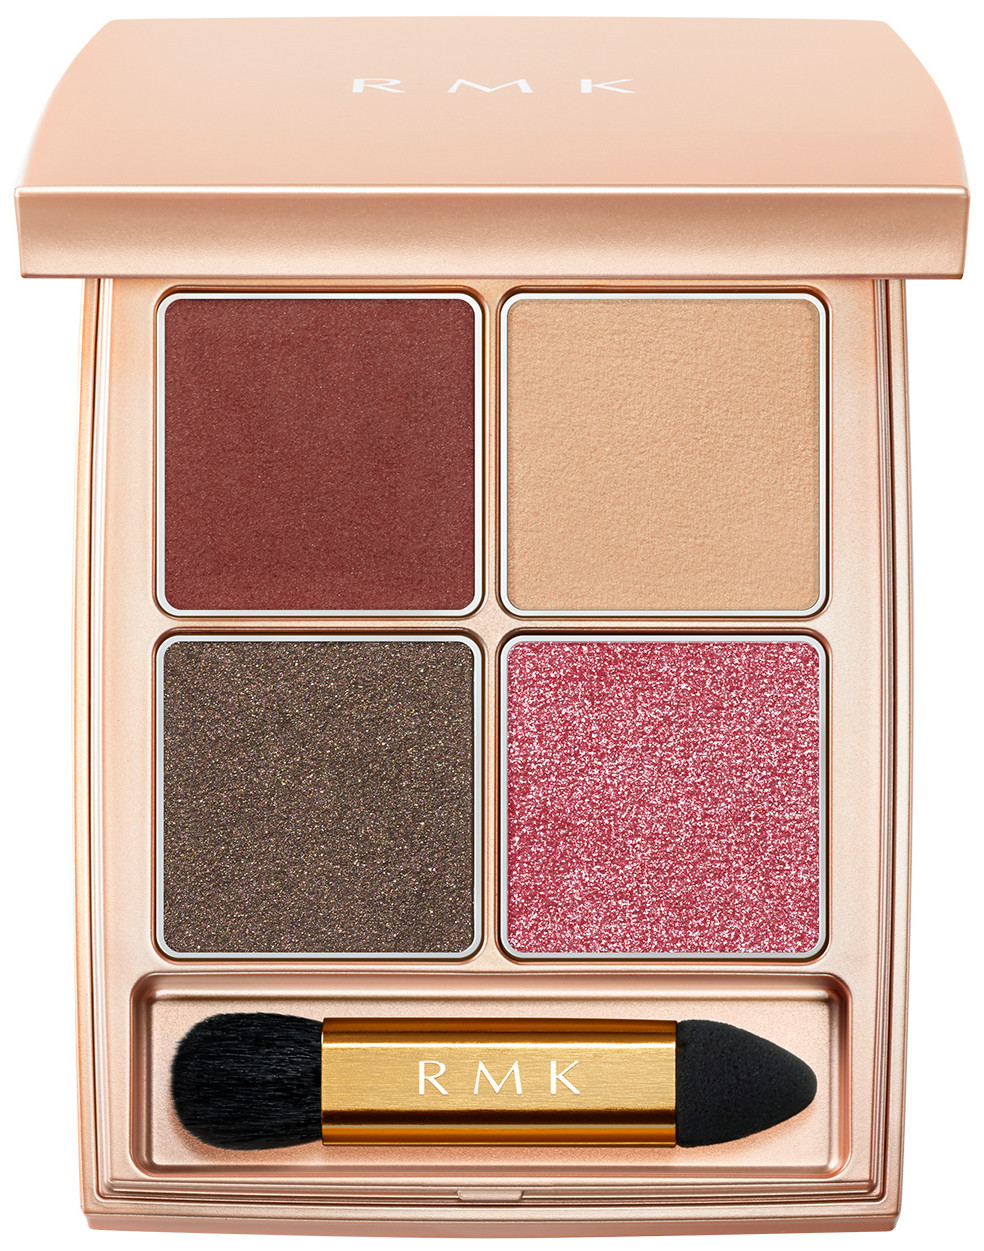 RMK Fall 2021 Collection Rosewood Daydream Rosewood Daydream 4 Eyes